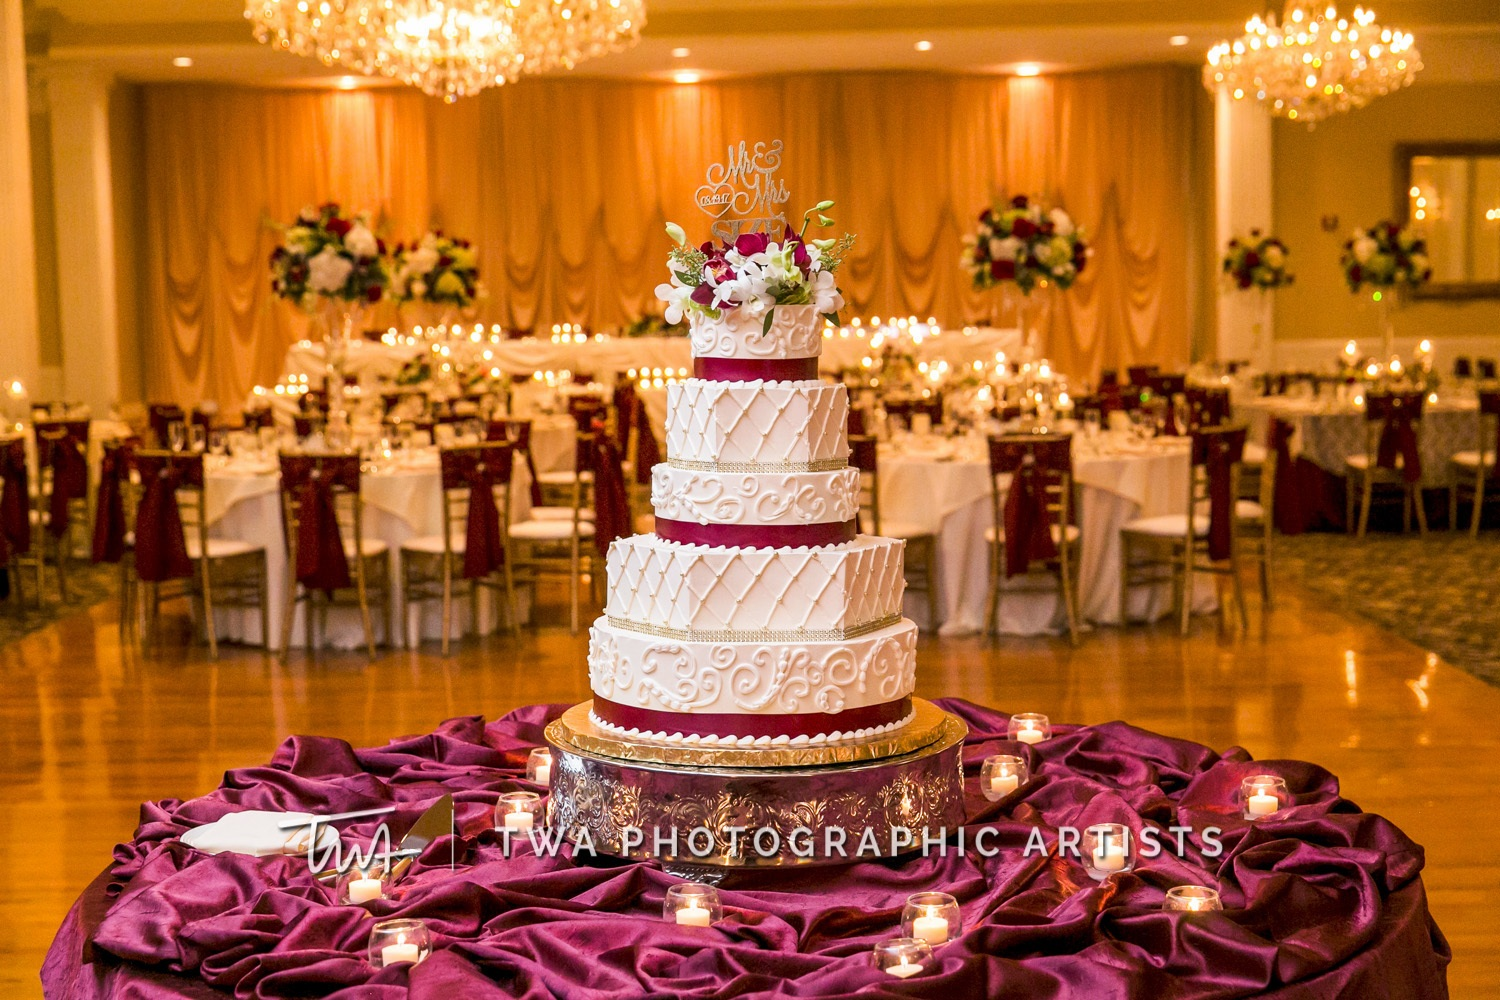 Chicago-Wedding-Photographer-TWA-Photographic-Artists-Abbington-Banquets_Green_Size_MiC_DR-1176